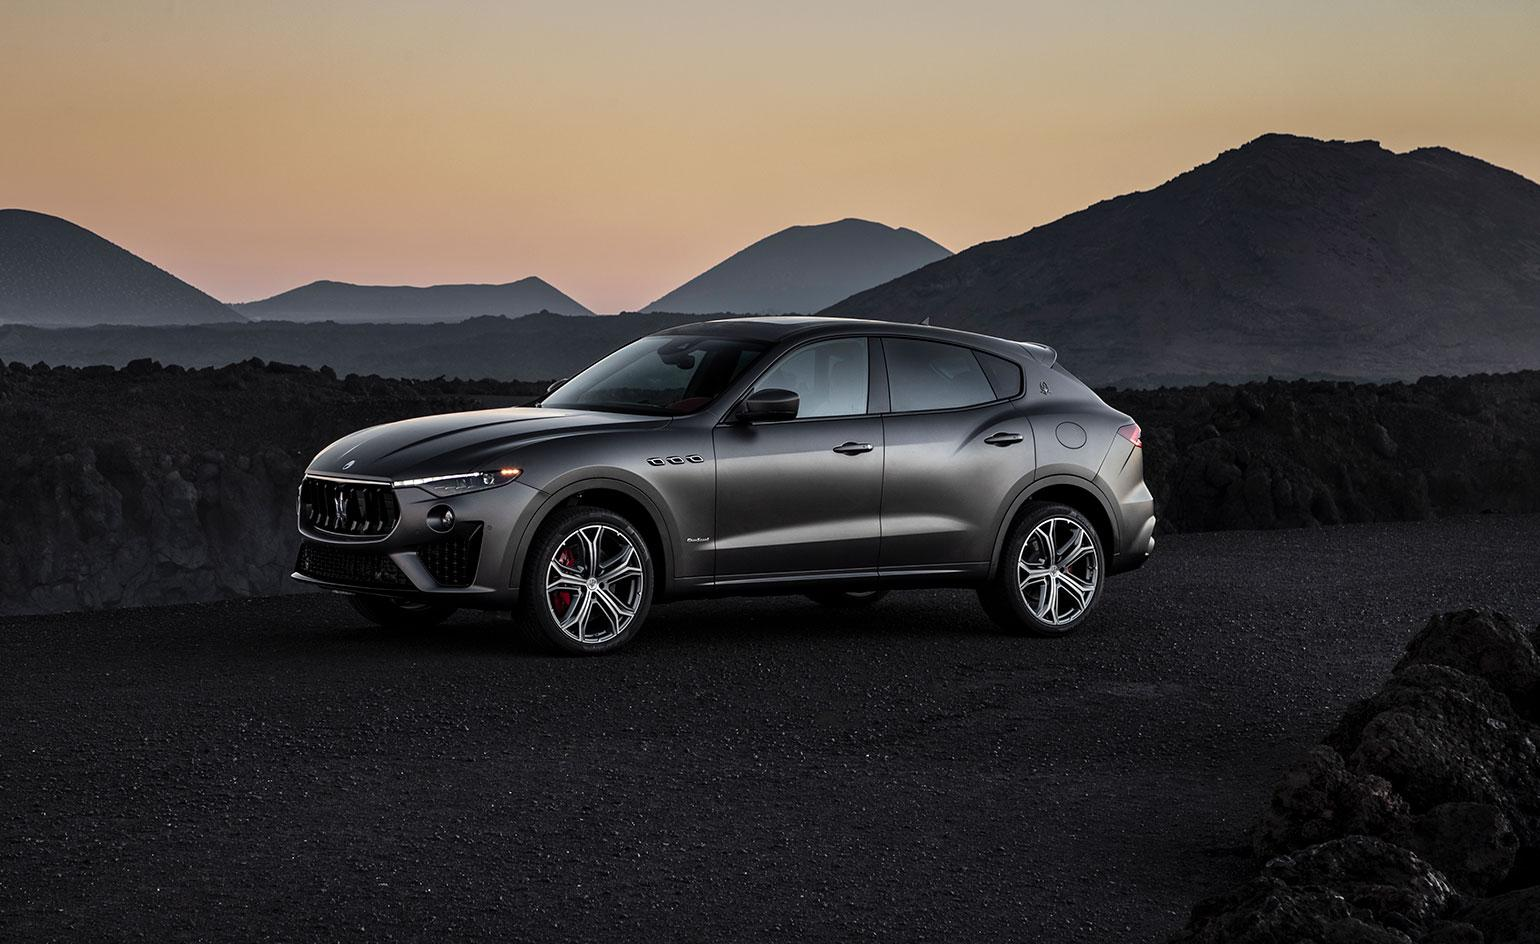 Maserati levante review and test drive 2019 wallpaper - Maserati levante wallpaper ...